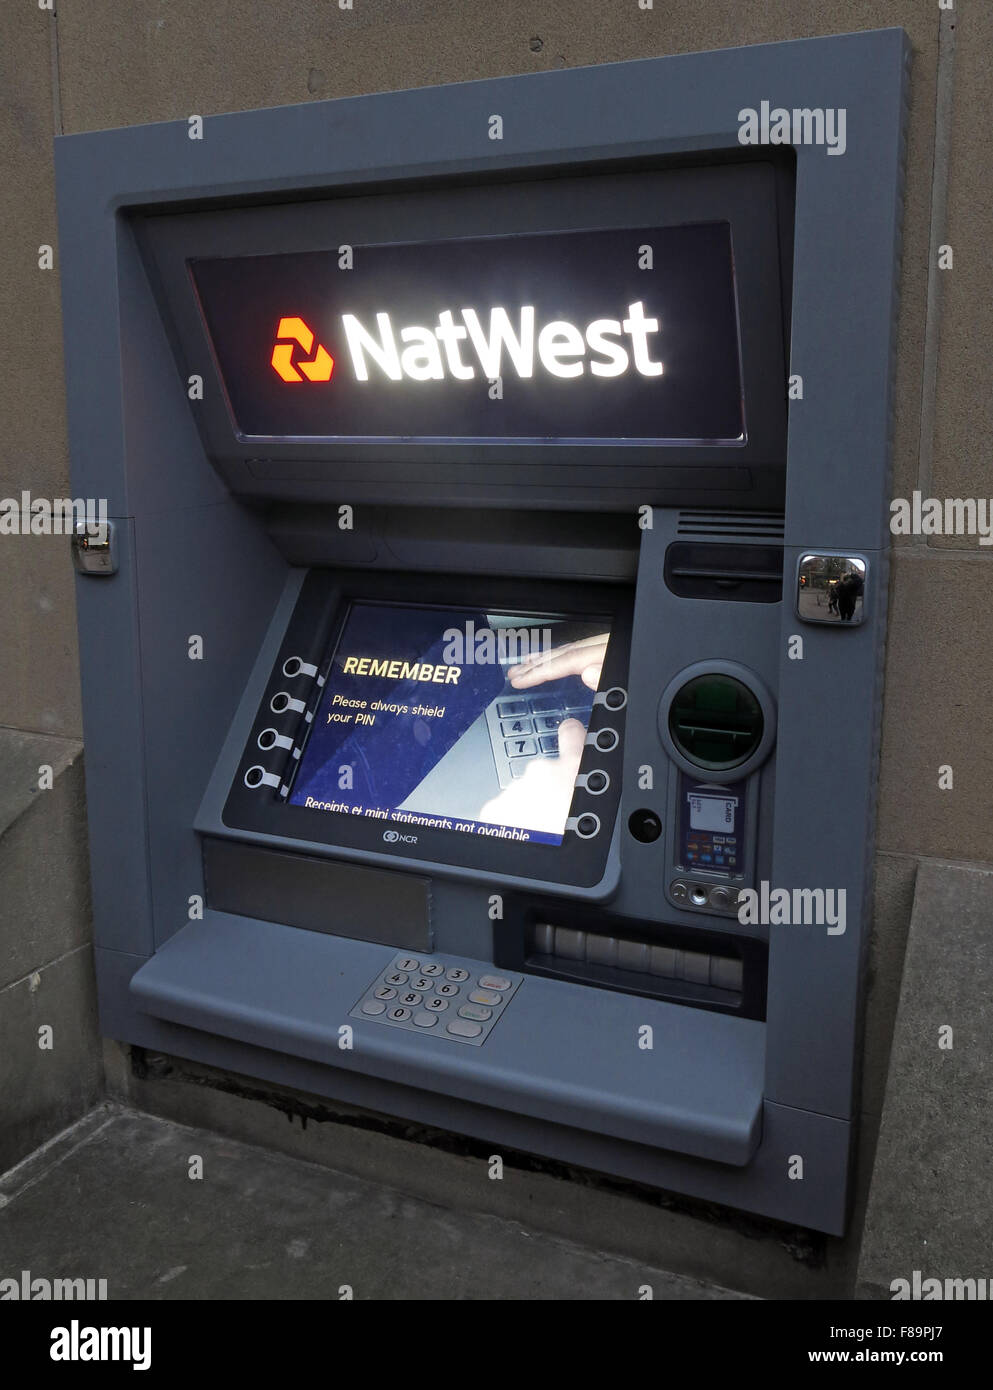 Natwest ATM hole in the wall machine, Warrington, Cheshire, England,UK - Stock Image